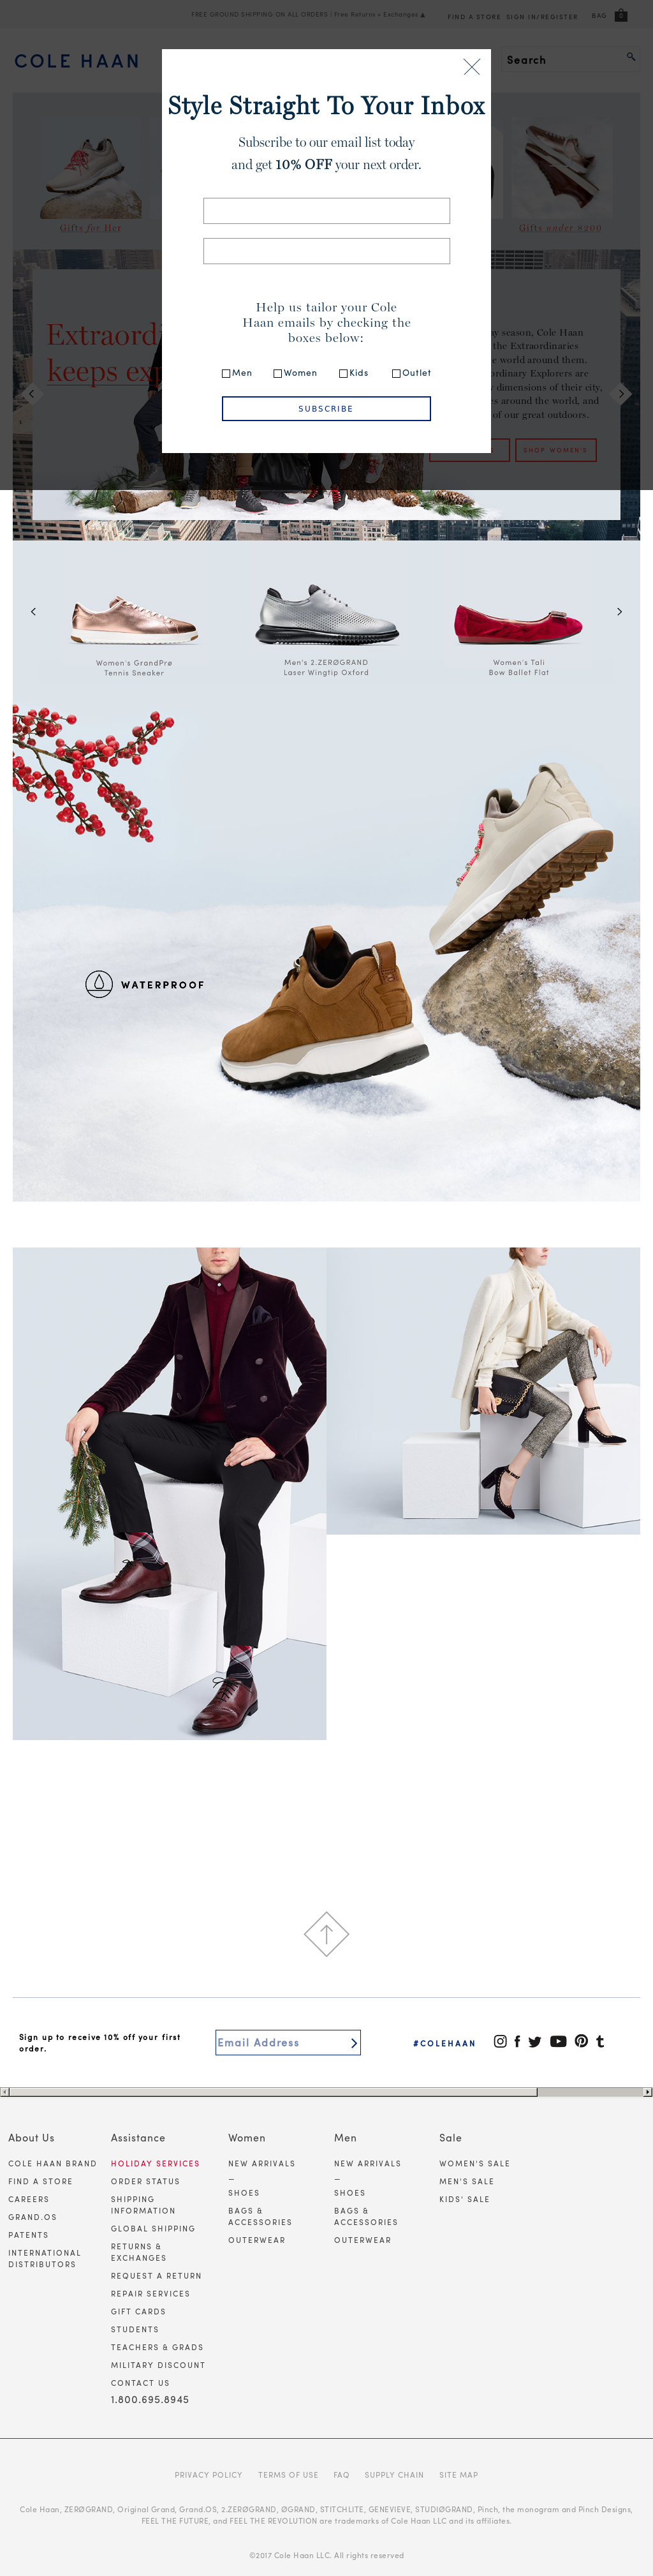 Cole Haan website history